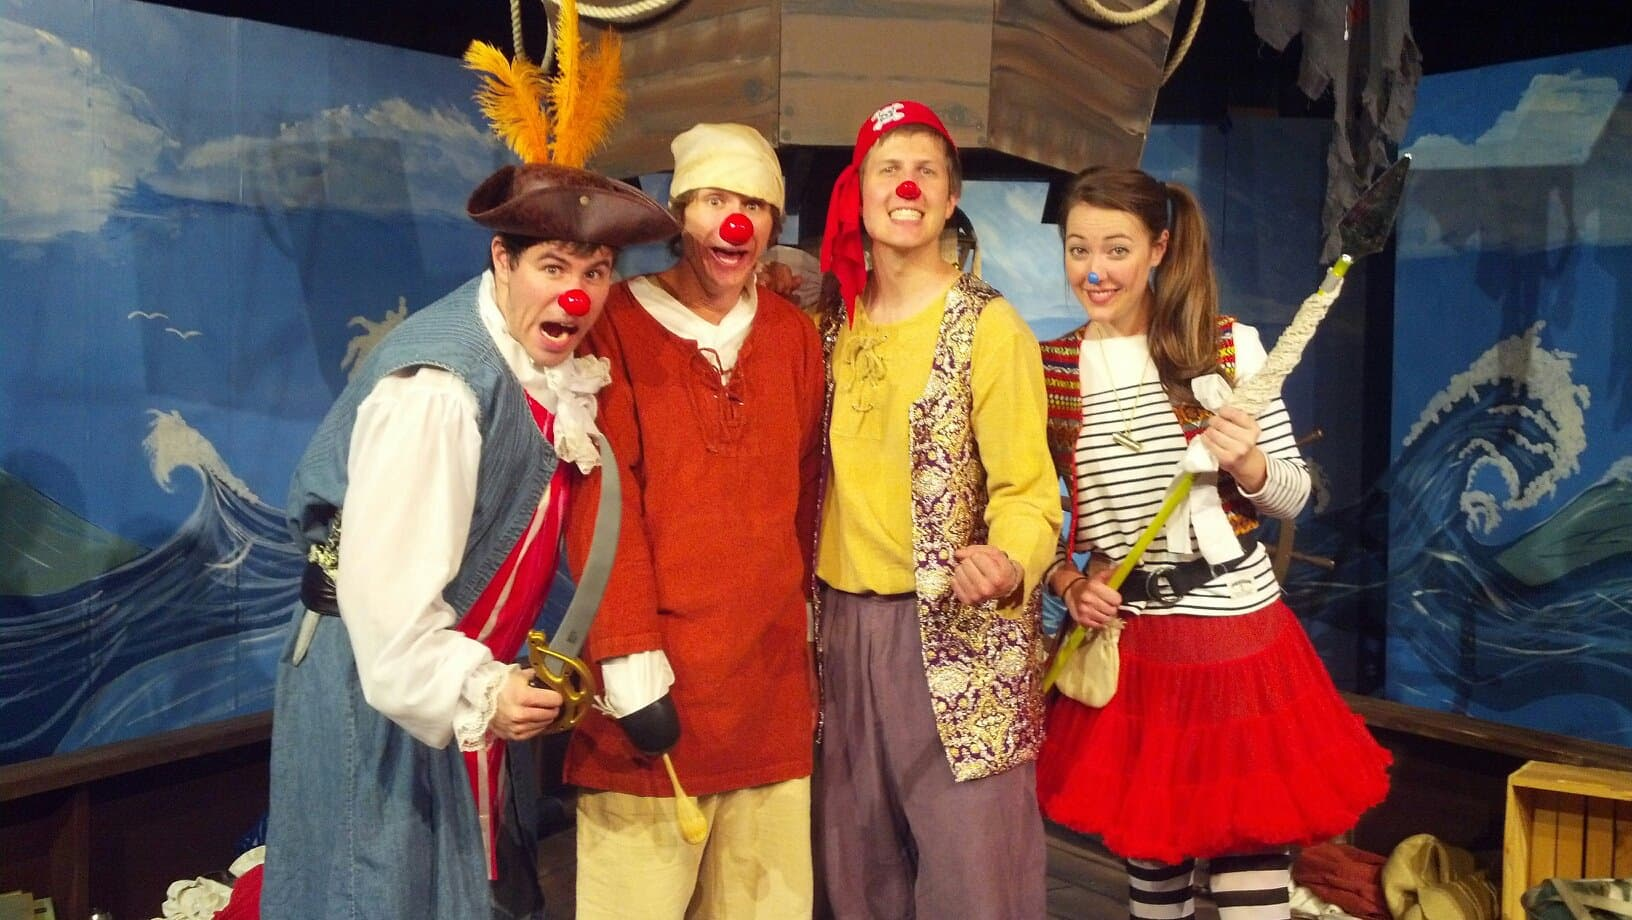 The Cast of Bluenose: (L to R) Doug Oliphant, Taylor Calmus, Anthony Storwick, & Erin Barnes